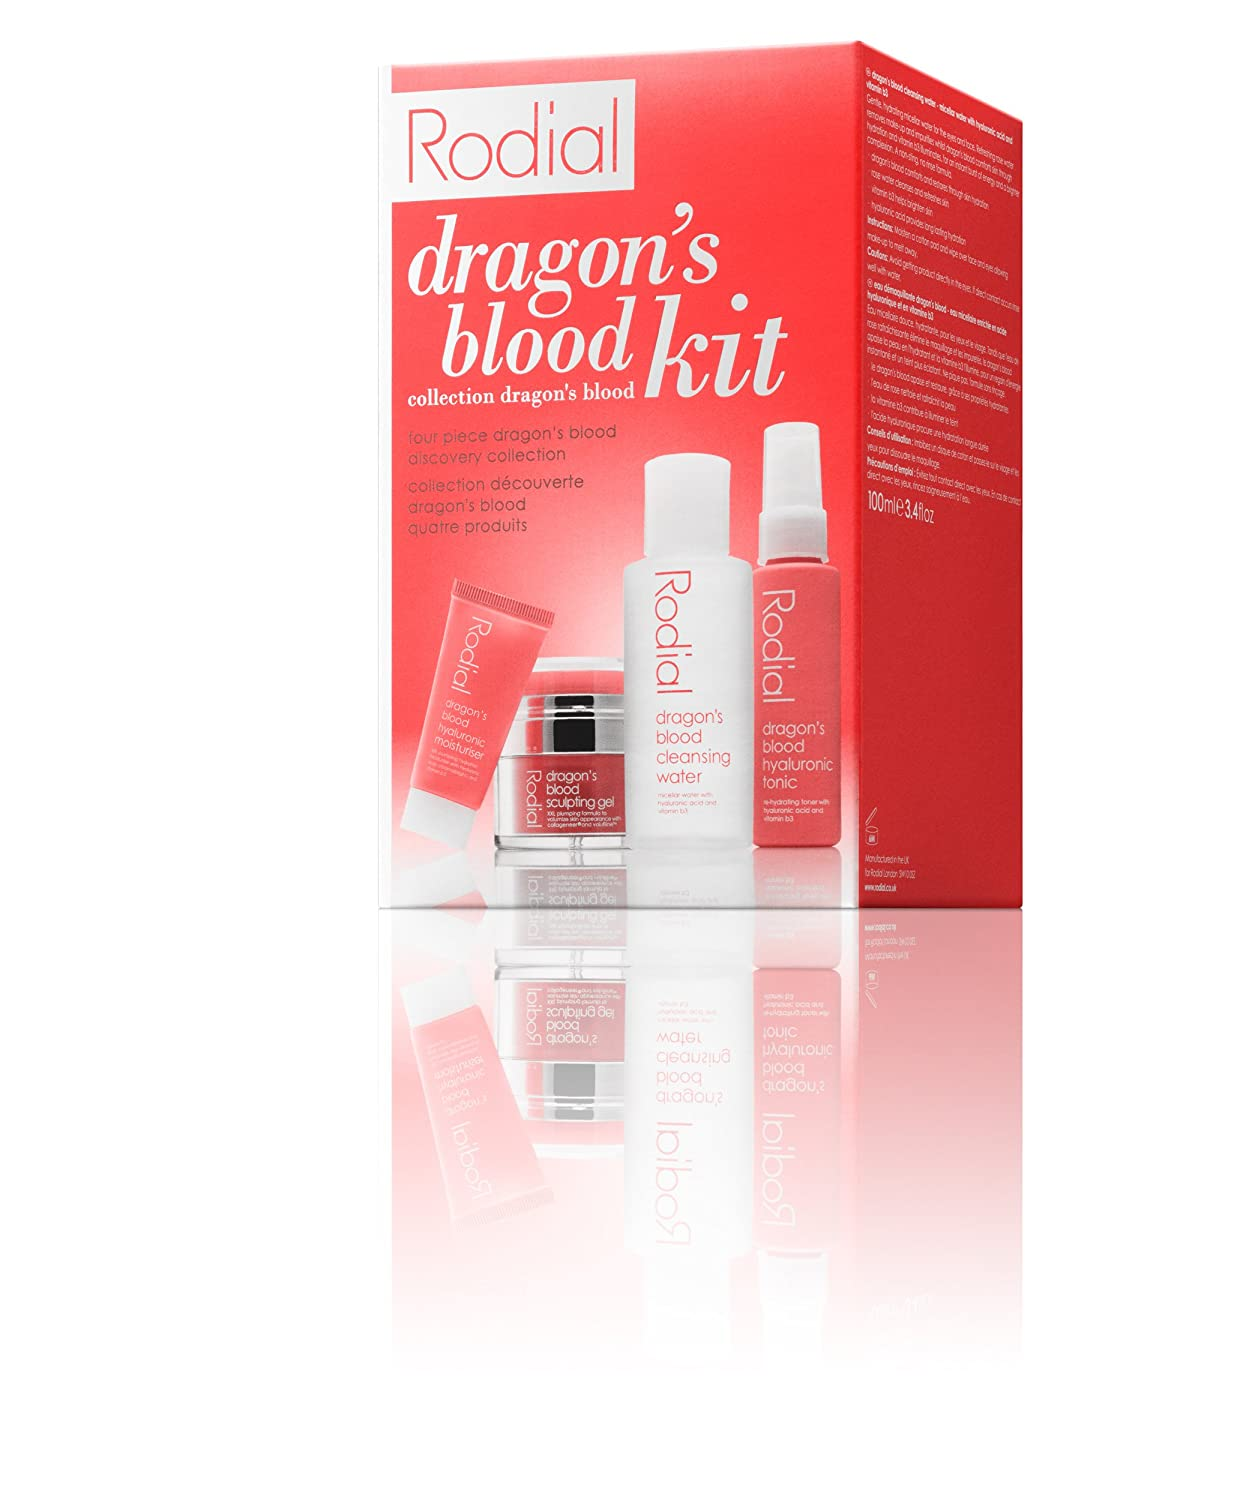 Rodial Dragon's Blood Discovery Kit SKDRGBDISCKIT